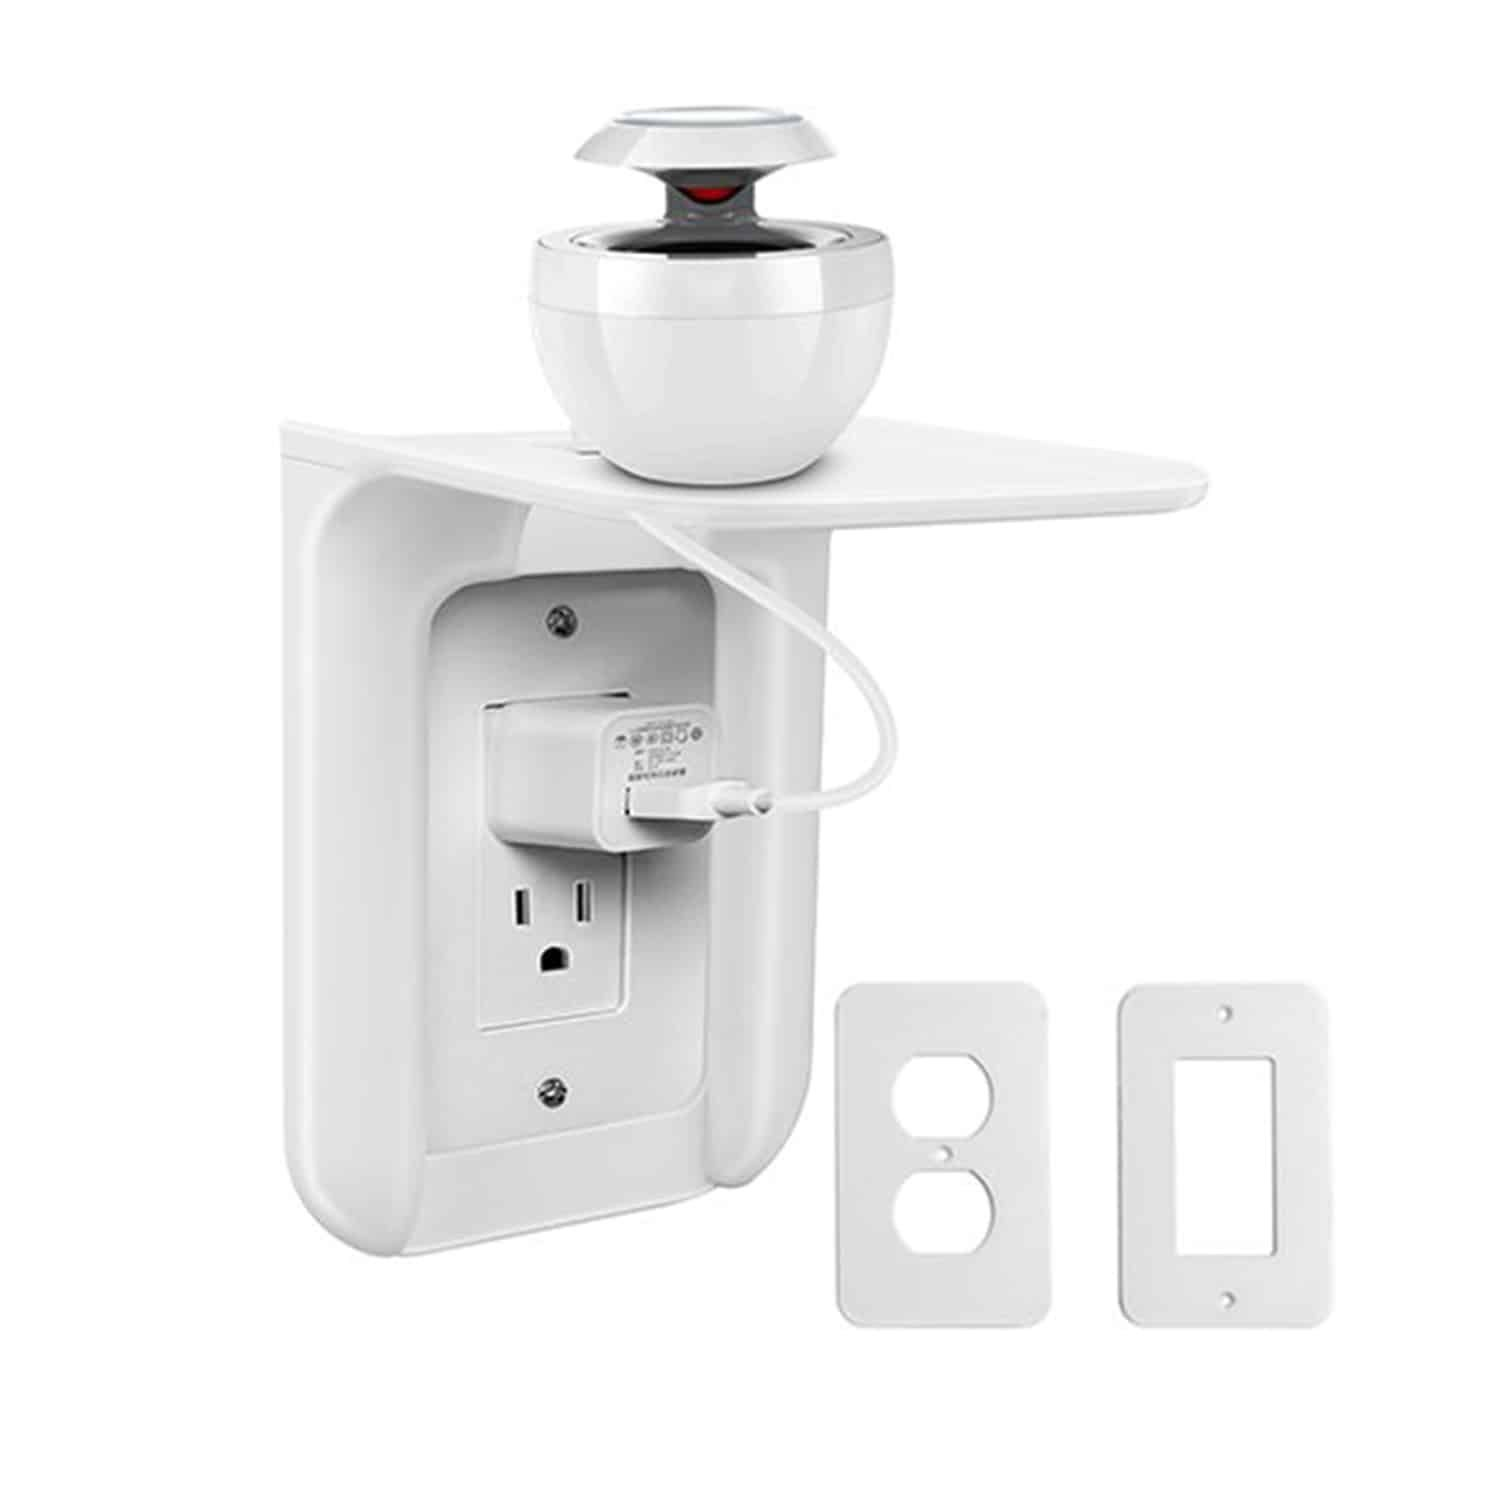 top 10 best wall outlet shelf reviews in 2020 with images on wall outlet id=30304